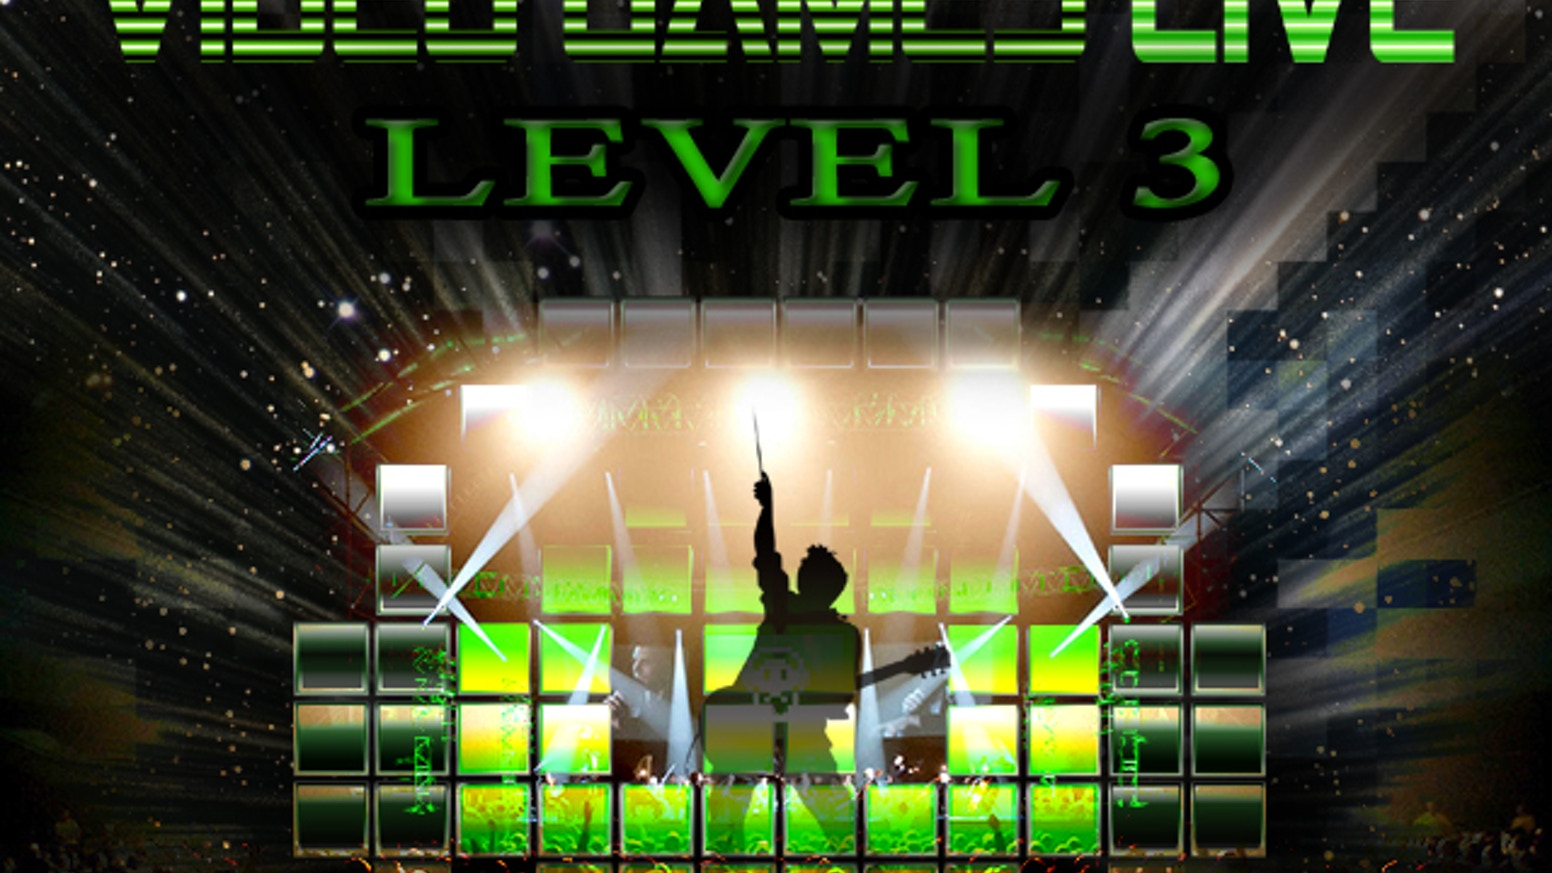 The 3rd album from the award-winning multimedia symphonic/rock decade long world touring video game concert event... Video Games Live!